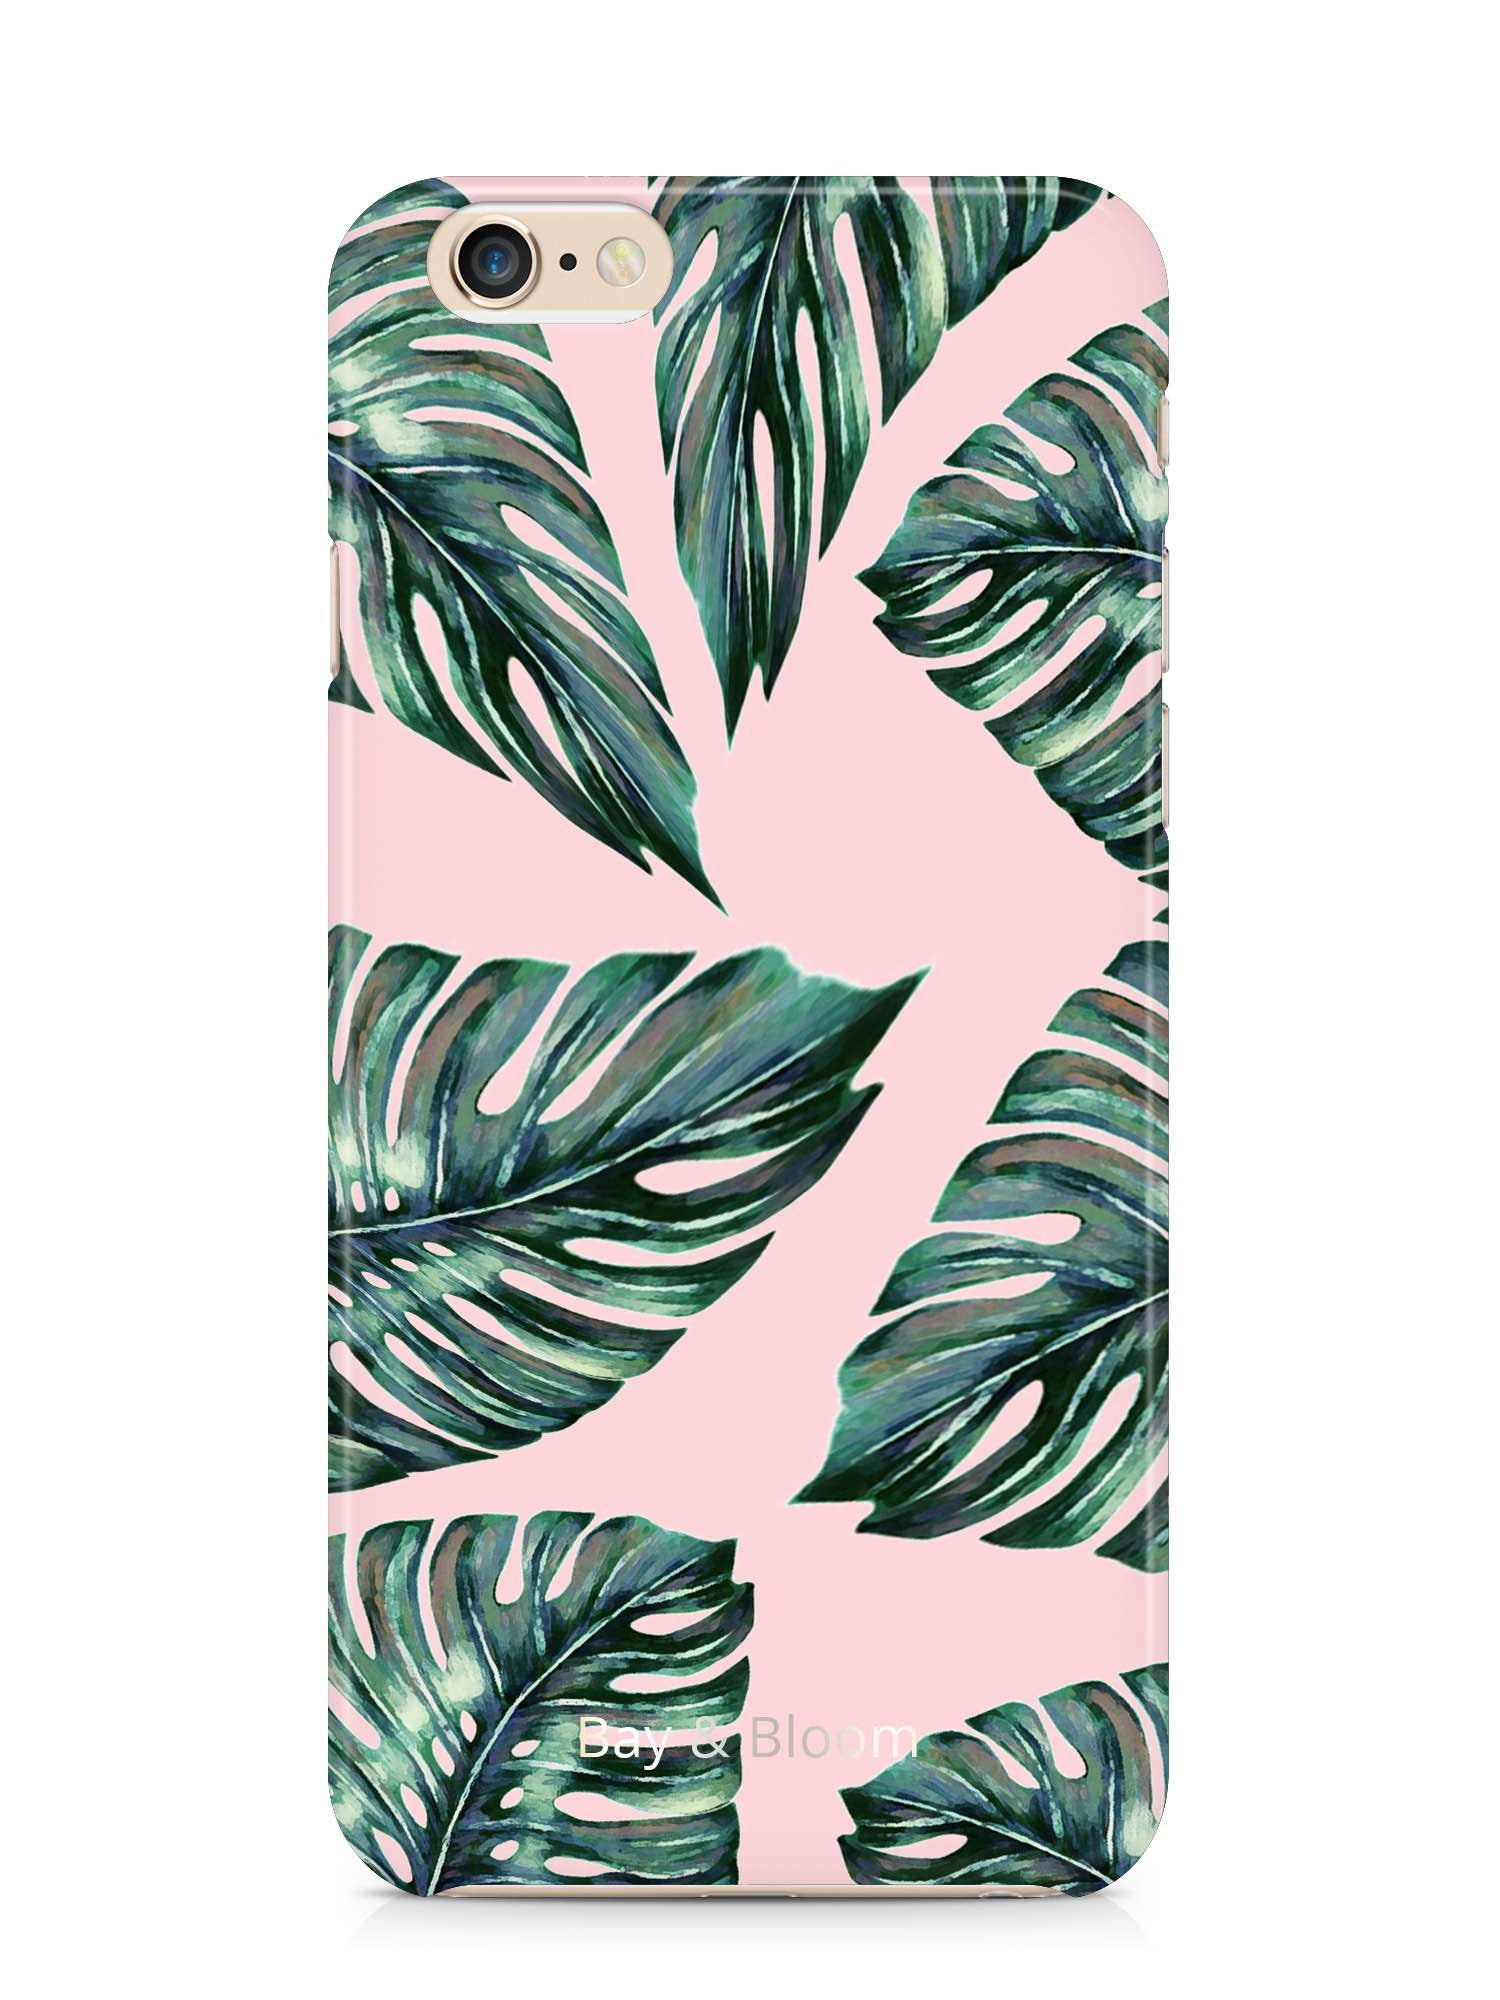 Bay & Bloom iPhone cover - Pink Leaves (iPhone 5 & 6) - Luxedy - 1